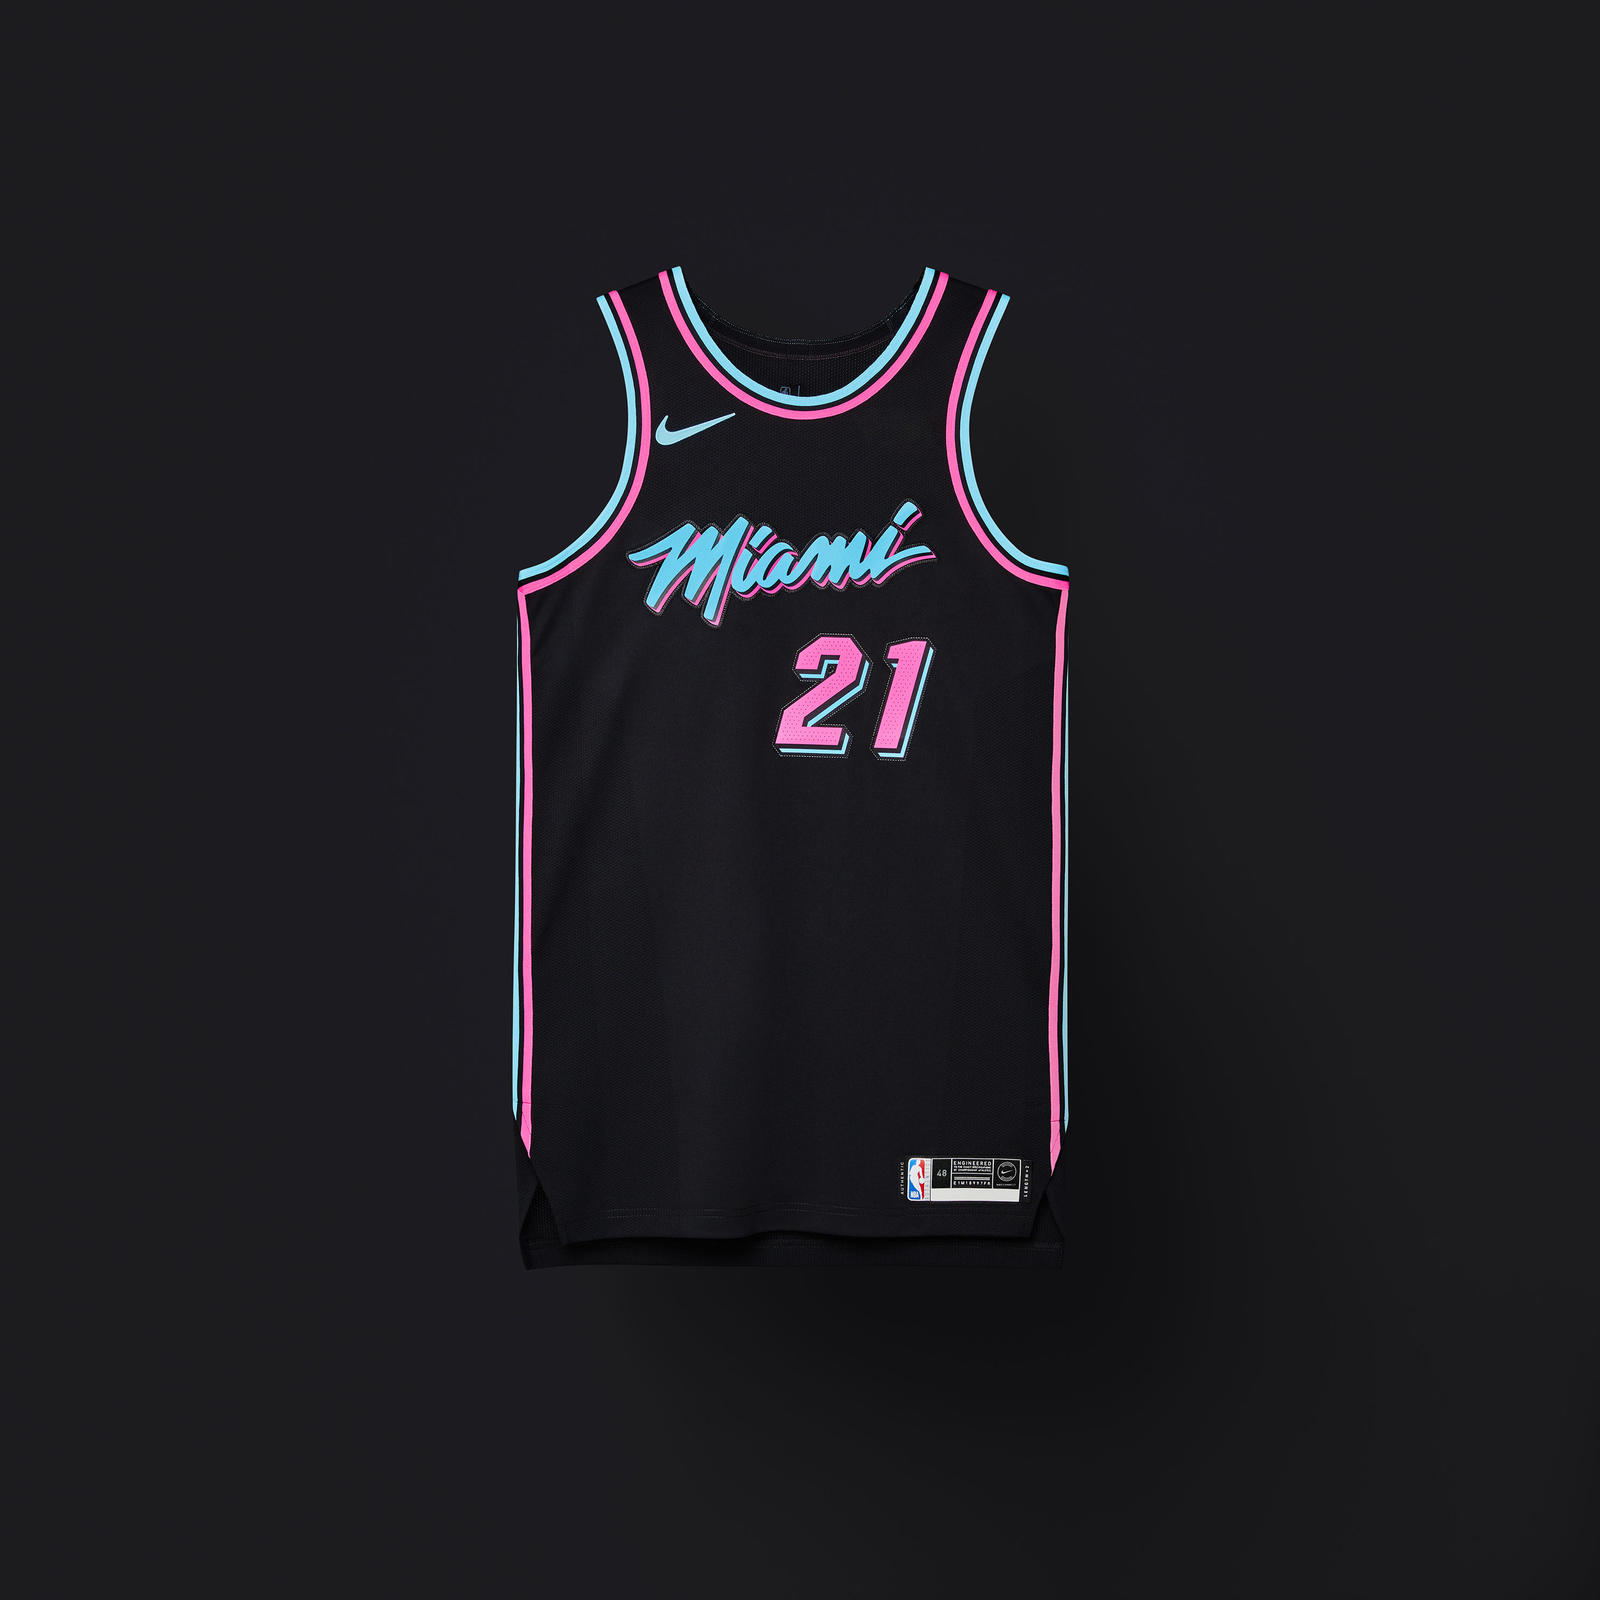 HO18-NBA-City-Edition-Miami-Jersey-0424-re-square-1600